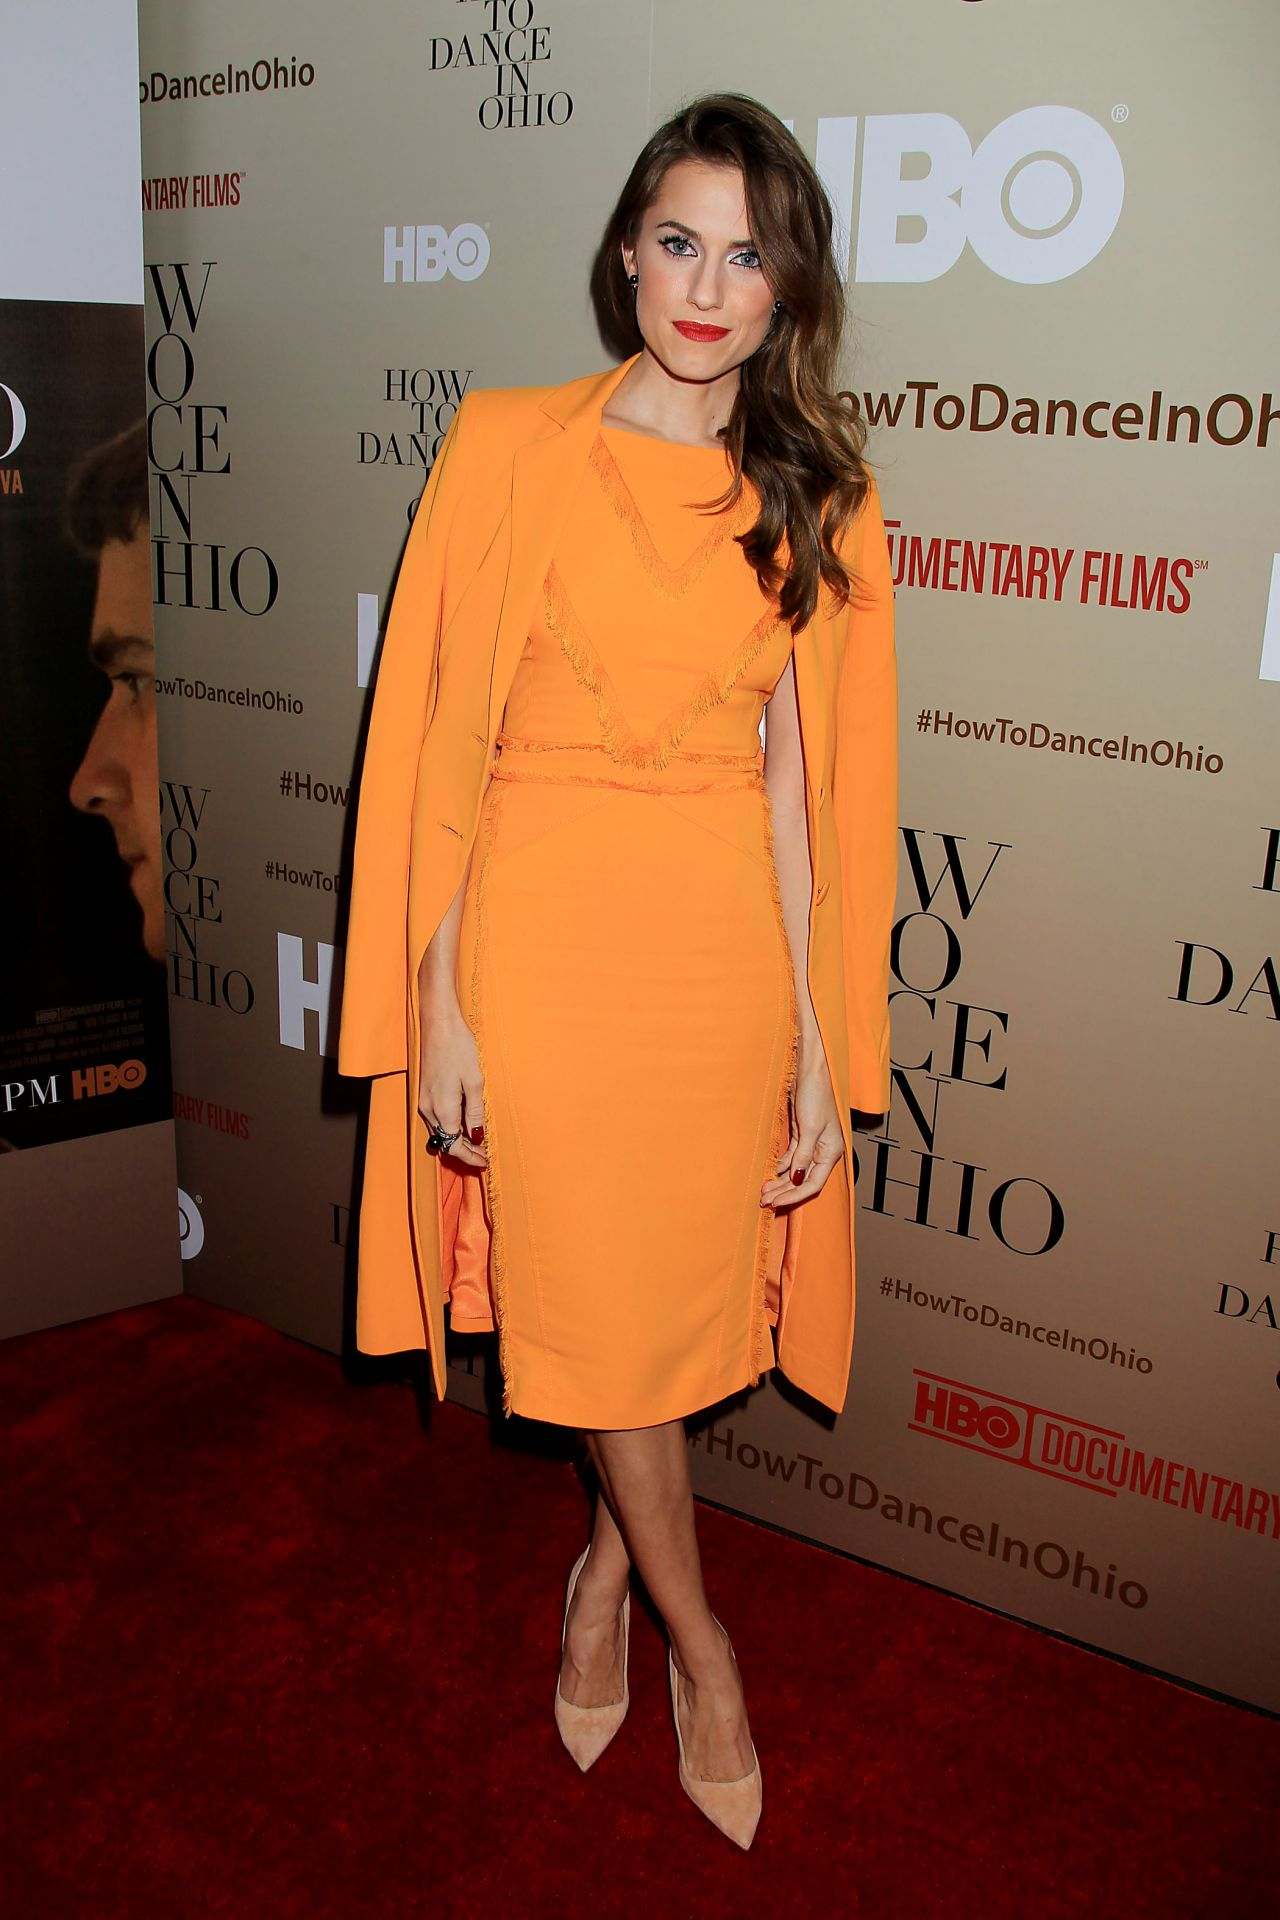 allison-williams-hbo-s-how-to-dance-in-ohio-premiere-in-new-york-city_5